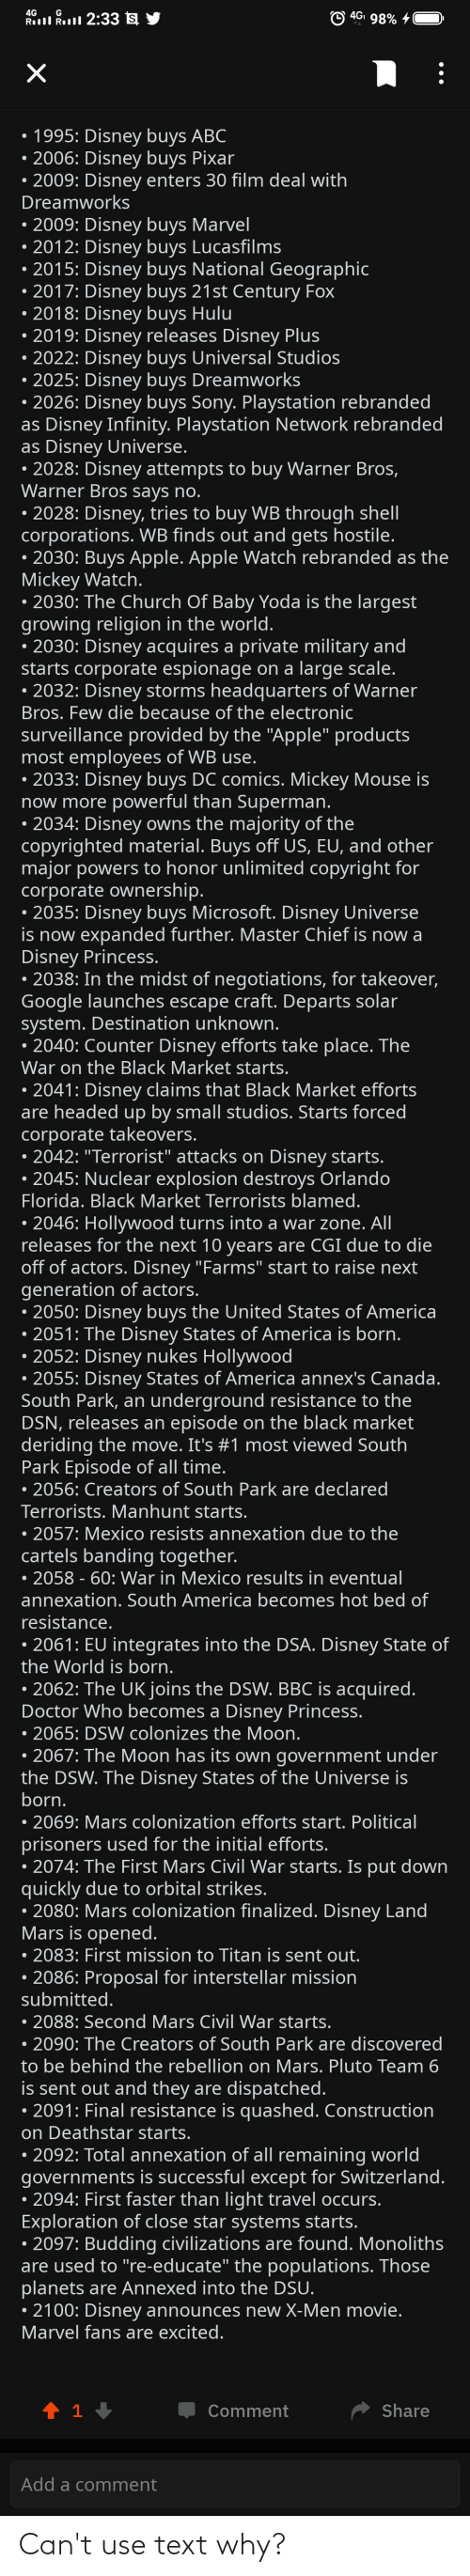 "sony playstation: 4Gi 98% 4  4G  Rill Rll 2:33 s y  1995: Disney buys ABC  2006: Disney buys Pixar  • 2009: Disney enters 30 film deal with  Dreamworks  • 2009: Disney buys Marvel  • 2012: Disney buys Lucasfilms  • 2015: Disney buys National Geographic  • 2017: Disney buys 21st Century Fox  • 2018: Disney buys Hulu  • 2019: Disney releases Disney Plus  • 2022: Disney buys Universal Studios  • 2025: Disney buys Dreamworks  2026: Disney buys Sony. Playstation rebranded  as Disney Infinity. Playstation Network rebranded  as Disney Universe.  • 2028: Disney attempts to buy Warner Bros,  Warner Bros says no.  • 2028: Disney, tries to buy WB through shell  corporations. WB finds out and gets hostile.  • 2030: Buys Apple. Apple Watch rebranded as the  Mickey Watch.  • 2030: The Church Of Baby Yoda is the largest  growing religion in the world.  • 2030: Disney acquires a private military and  starts corporate espionage on a large scale.  • 2032: Disney storms headquarters of Warner  Bros. Few die because of the electronic  surveillance provided by the ""Apple"" products  most employees of WB use.  • 2033: Disney buys DC comics. Mickey Mouse is  now more powerful than Superman.  • 2034: Disney owns the majority of the  copyrighted material. Buys off US, EU, and other  major powers to honor unlimited copyright for  corporate ownership.  • 2035: Disney buys Microsoft. Disney Universe  is now expanded further. Master Chief is now a  Disney Princess.  • 2038: In the midst of negotiations, for takeover,  Google launches escape craft. Departs solar  system. Destination unknown.  • 2040: Counter Disney efforts take place. The  War on the Black Market starts.  • 2041: Disney claims that Black Market efforts  are headed up by small studios. Starts forced  corporate takeovers.  • 2042: ""Terrorist"" attacks on Disney starts.  2045: Nuclear explosion destroys Orlando  Florida. Black Market Terrorists blamed.  • 2046: Hollywood turns into a war zone. All  releases for the next 10 years are CGI due to die  off of actors. Disney ""Farms"" start to raise next  generation of actors.  • 2050: Disney buys the United States of America  • 2051: The Disney States of America is born.  • 2052: Disney nukes Hollywood  2055: Disney States of America annex's Canada.  South Park, an underground resistance to the  DSN, releases an episode on the black market  deriding the move. It's #1 most viewed South  Park Episode of all time.  • 2056: Creators of South Park are declared  Terrorists. Manhunt starts.  • 2057: Mexico resists annexation due to the  cartels banding together.  • 2058 - 60: War in Mexico results in eventual  annexation. South America becomes hot bed of  resistance.  • 2061: EU integrates into the DSA. Disney State of  the World is born.  • 2062: The UK joins the DSW. BBC is acquired.  Doctor Who becomes a Disney Princess.  • 2065: DSW colonizes the Moon.  • 2067: The Moon has its own government under  the DSW. The Disney States of the Universe is  born.  • 2069: Mars colonization efforts start. Political  prisoners used for the initial efforts.  • 2074: The First Mars Civil War starts. Is put down  quickly due to orbital strikes.  2080: Mars colonization finalized. Disney Land  Mars is opened.  • 2083: First mission to Titan is sent out.  • 2086: Proposal for interstellar mission  submitted.  • 2088: Second Mars Civil War starts.  • 2090: The Creators of South Park are discovered  to be behind the rebellion on Mars. Pluto Team 6  is sent out and they are dispatched.  • 2091: Final resistance is quashed. Construction  on Deathstar starts.  • 2092: Total annexation of all remaining world  governments is successful except for Switzerland.  • 2094: First faster than light travel occurs.  Exploration of close star systems starts.  • 2097: Budding civilizations are found. Monoliths  are used to ""re-educate"" the populations. Those  planets are Annexed into the DSU.  2100: Disney announces new X-Men movie.  Marvel fans are excited.  Share  Comment  Add a comment Can't use text why?"